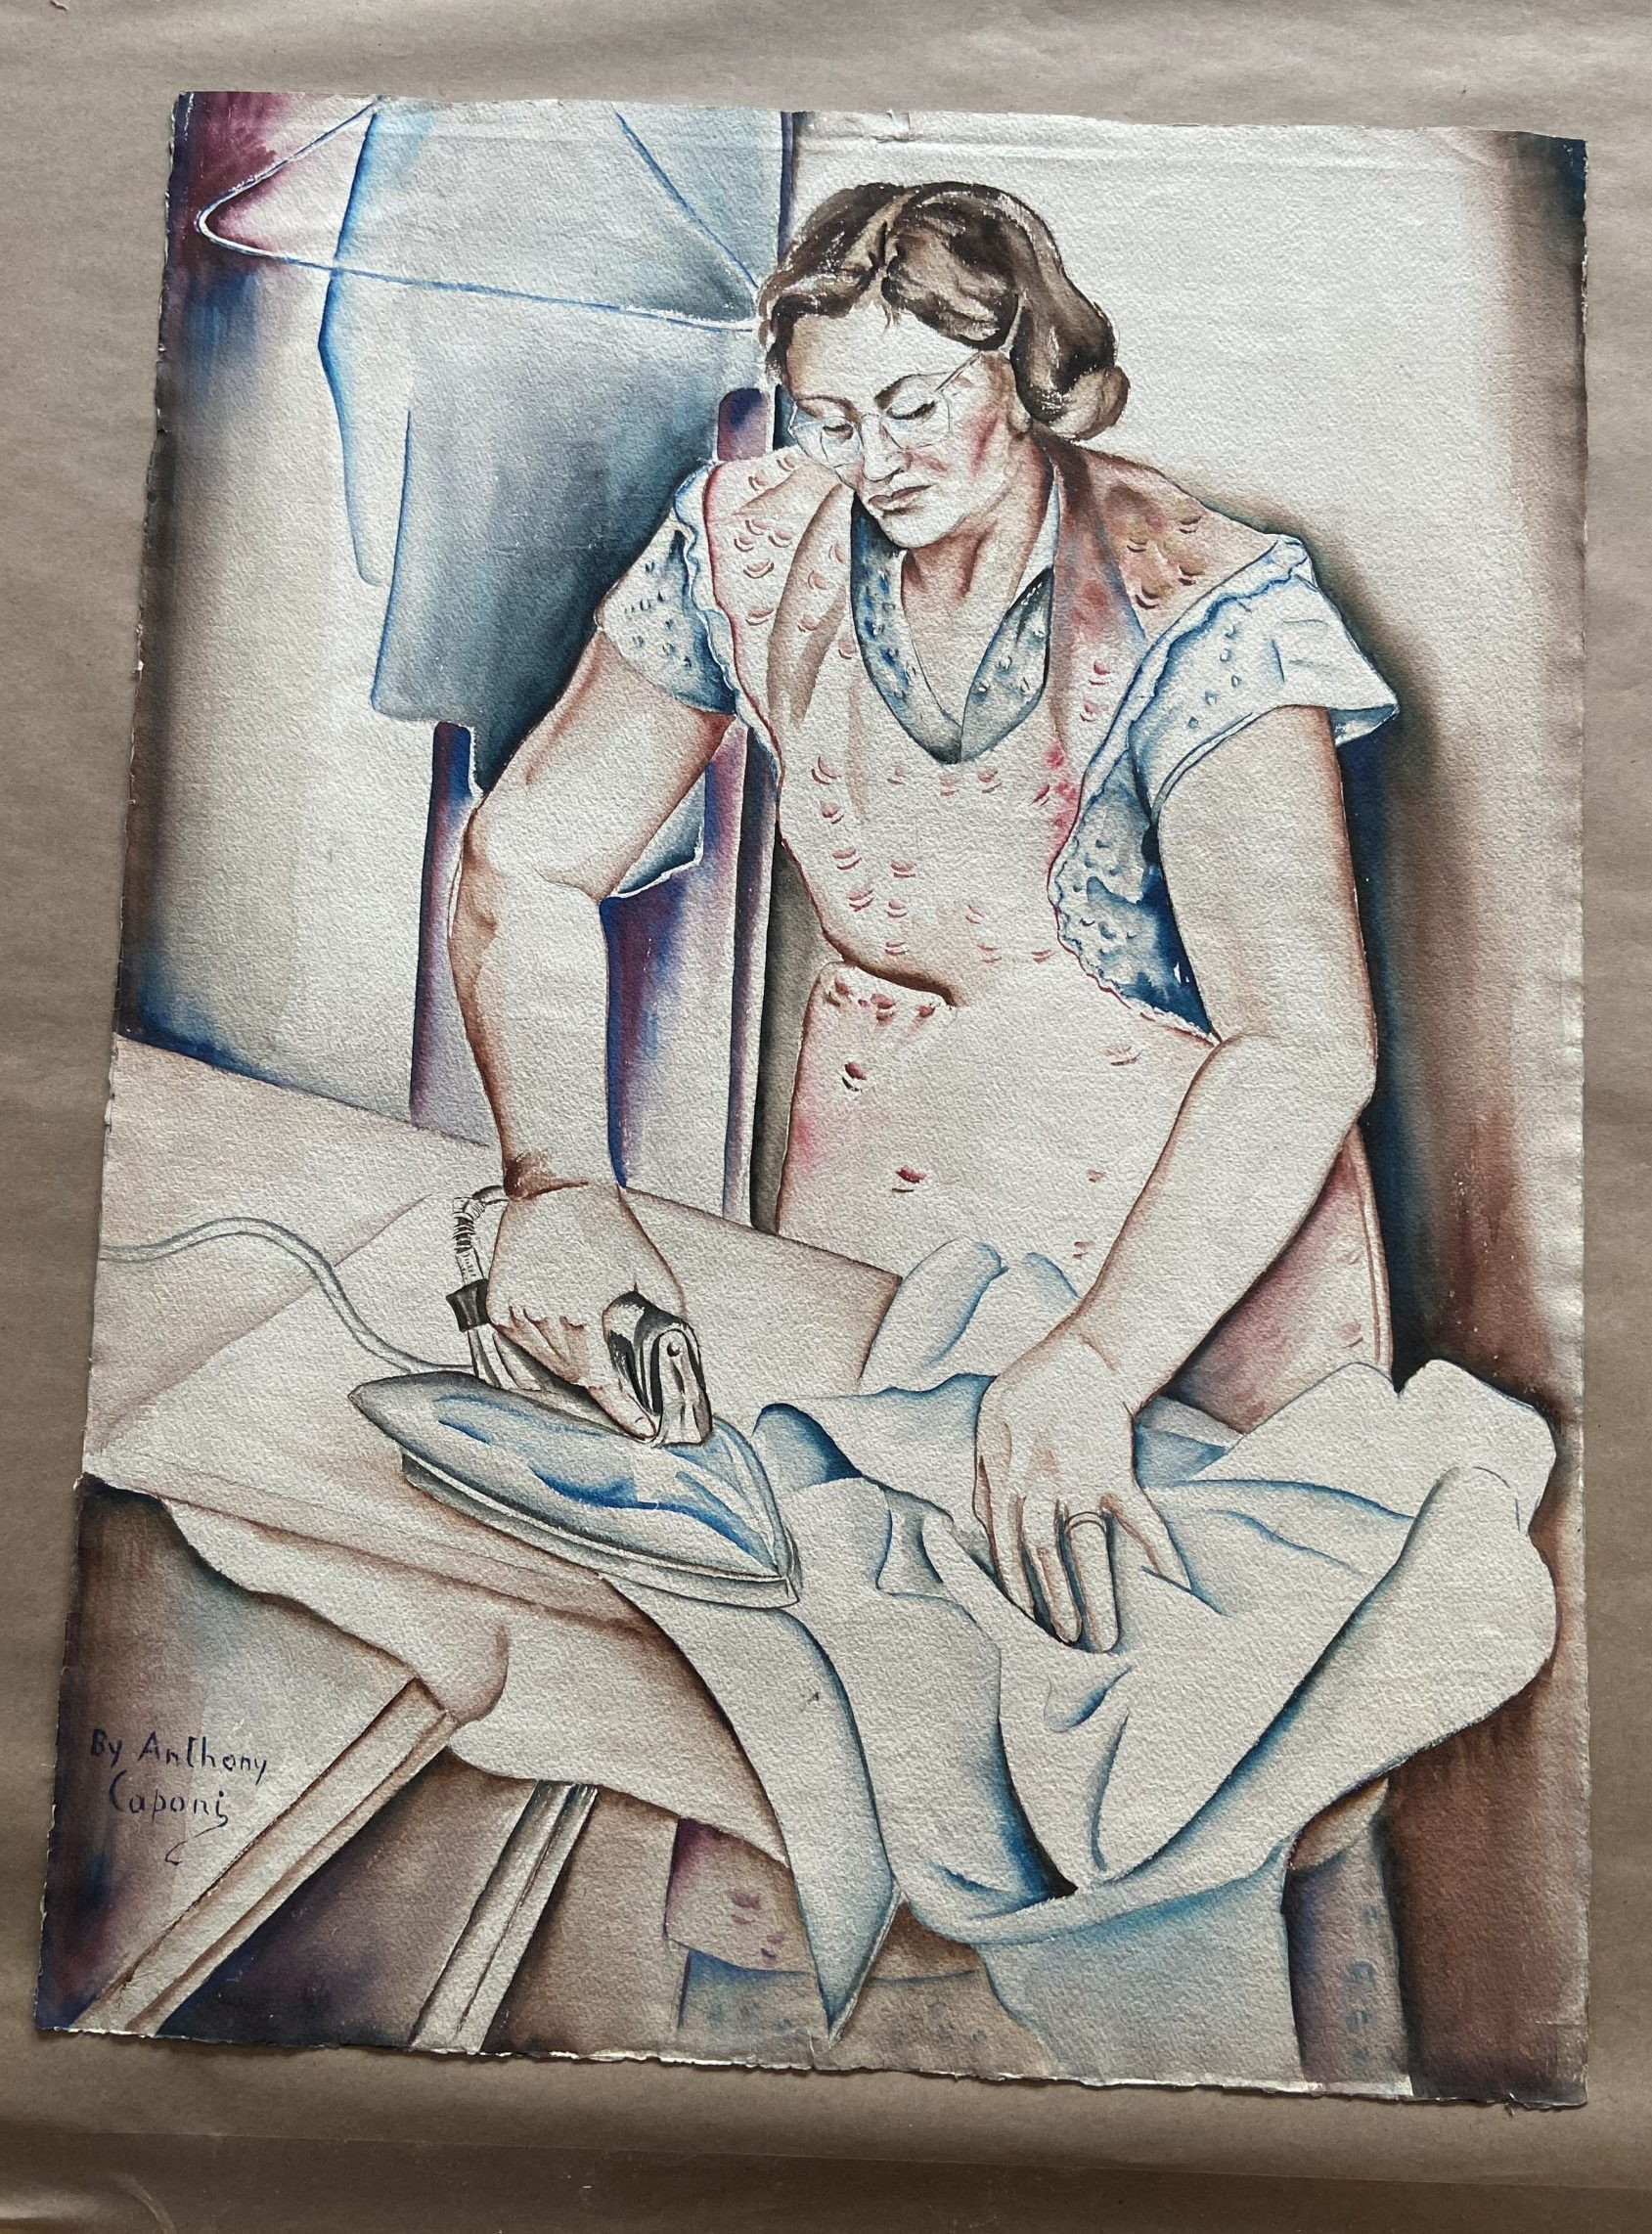 A watercolor painting of a woman ironing a shirt